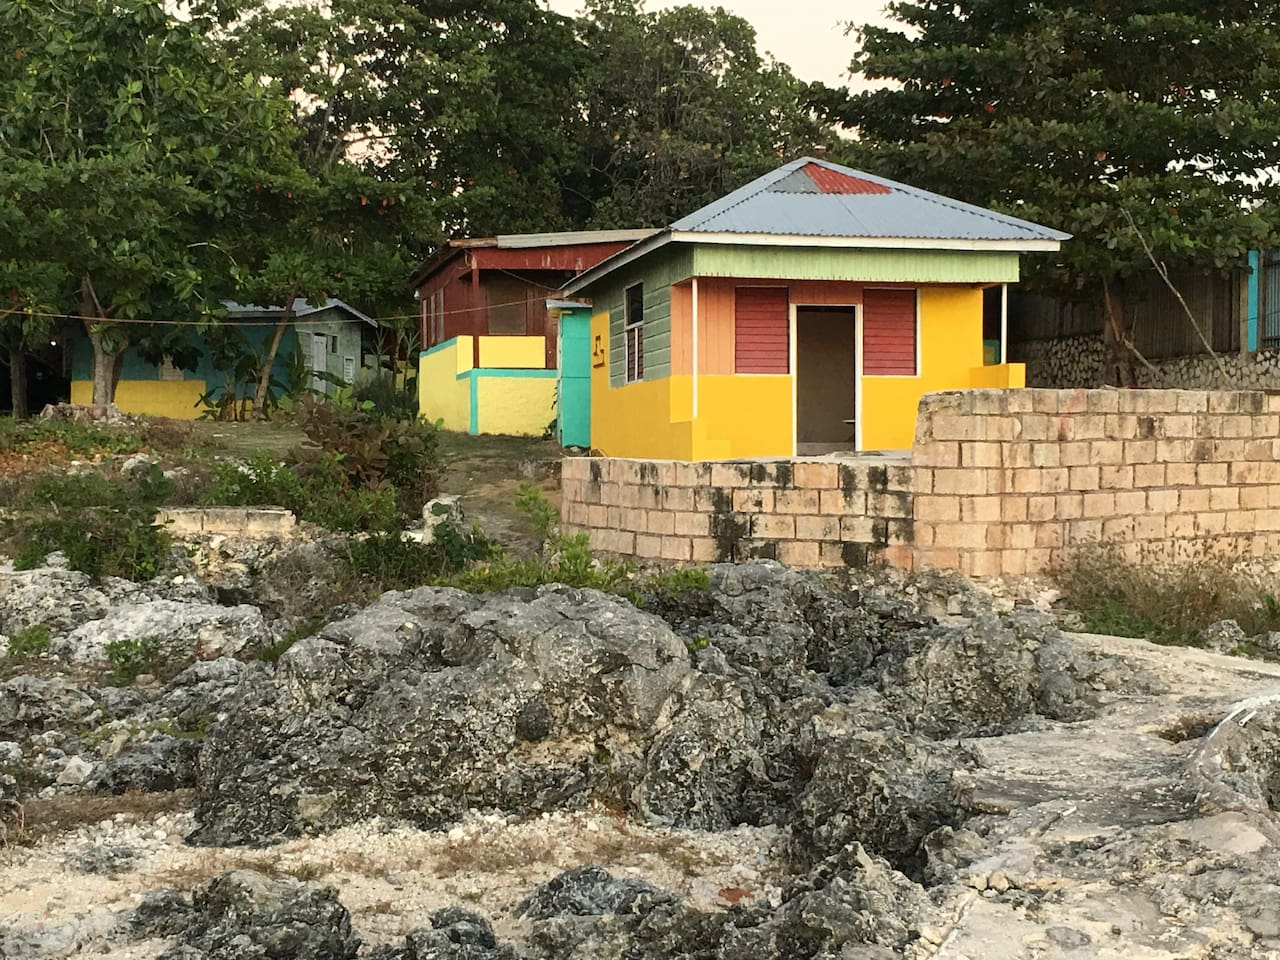 Oh, my little cottage in Negril